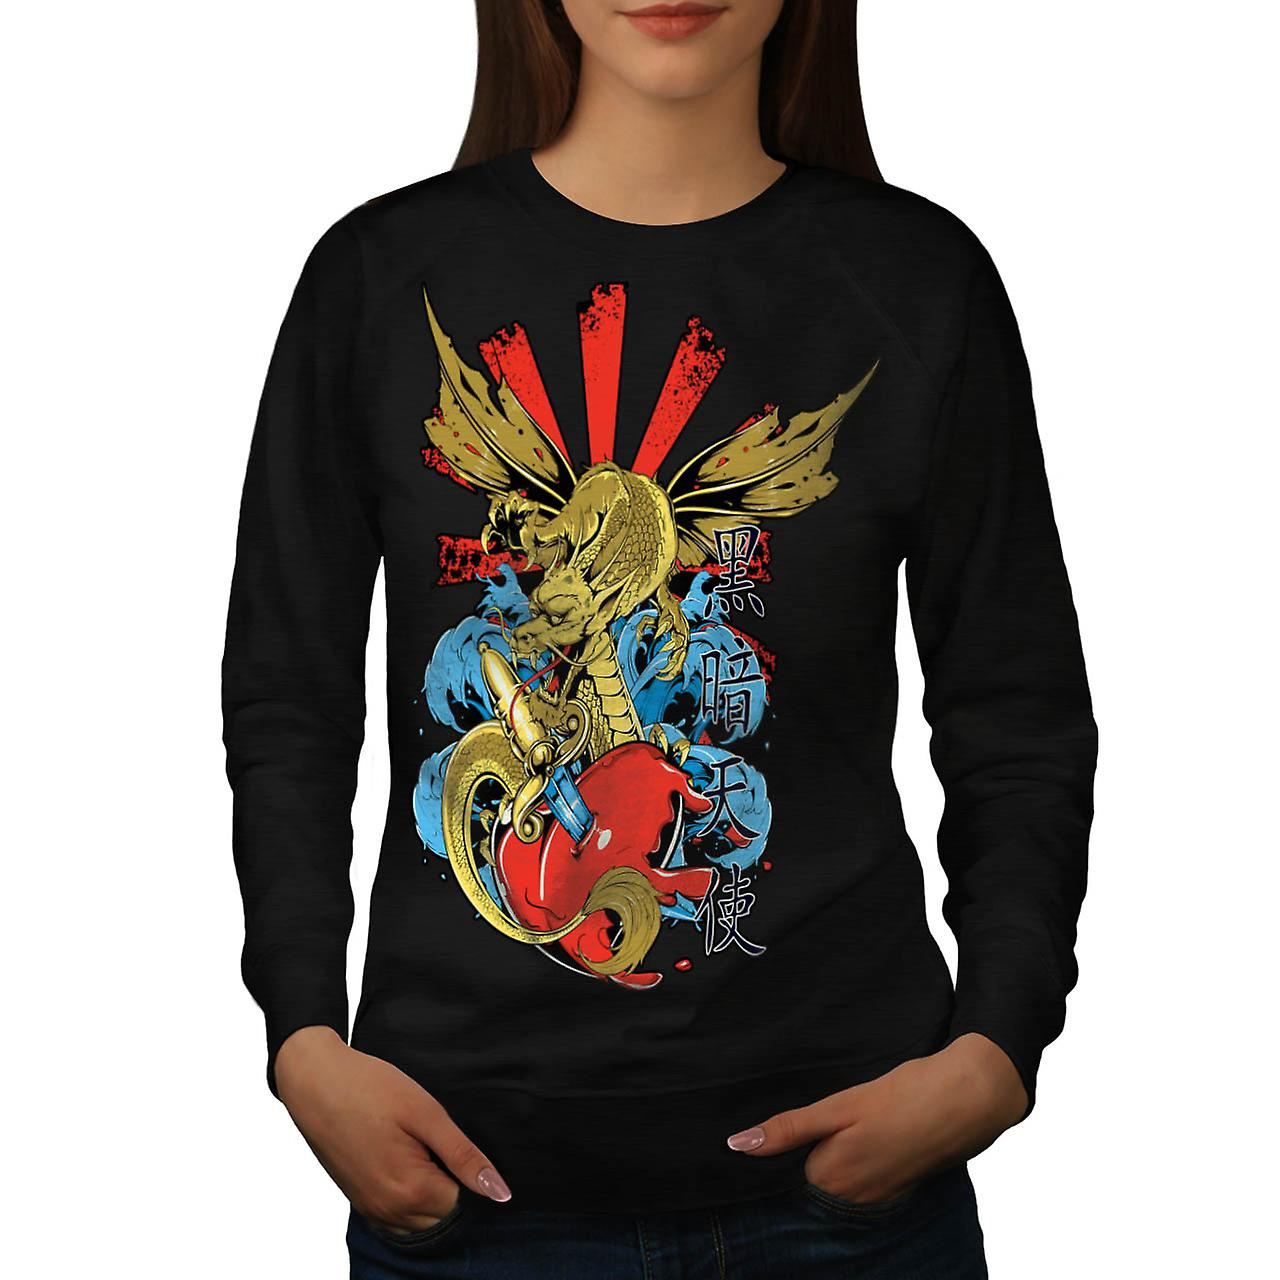 Monster Dragon Heart Love Hurts Women Black Sweatshirt | Wellcoda